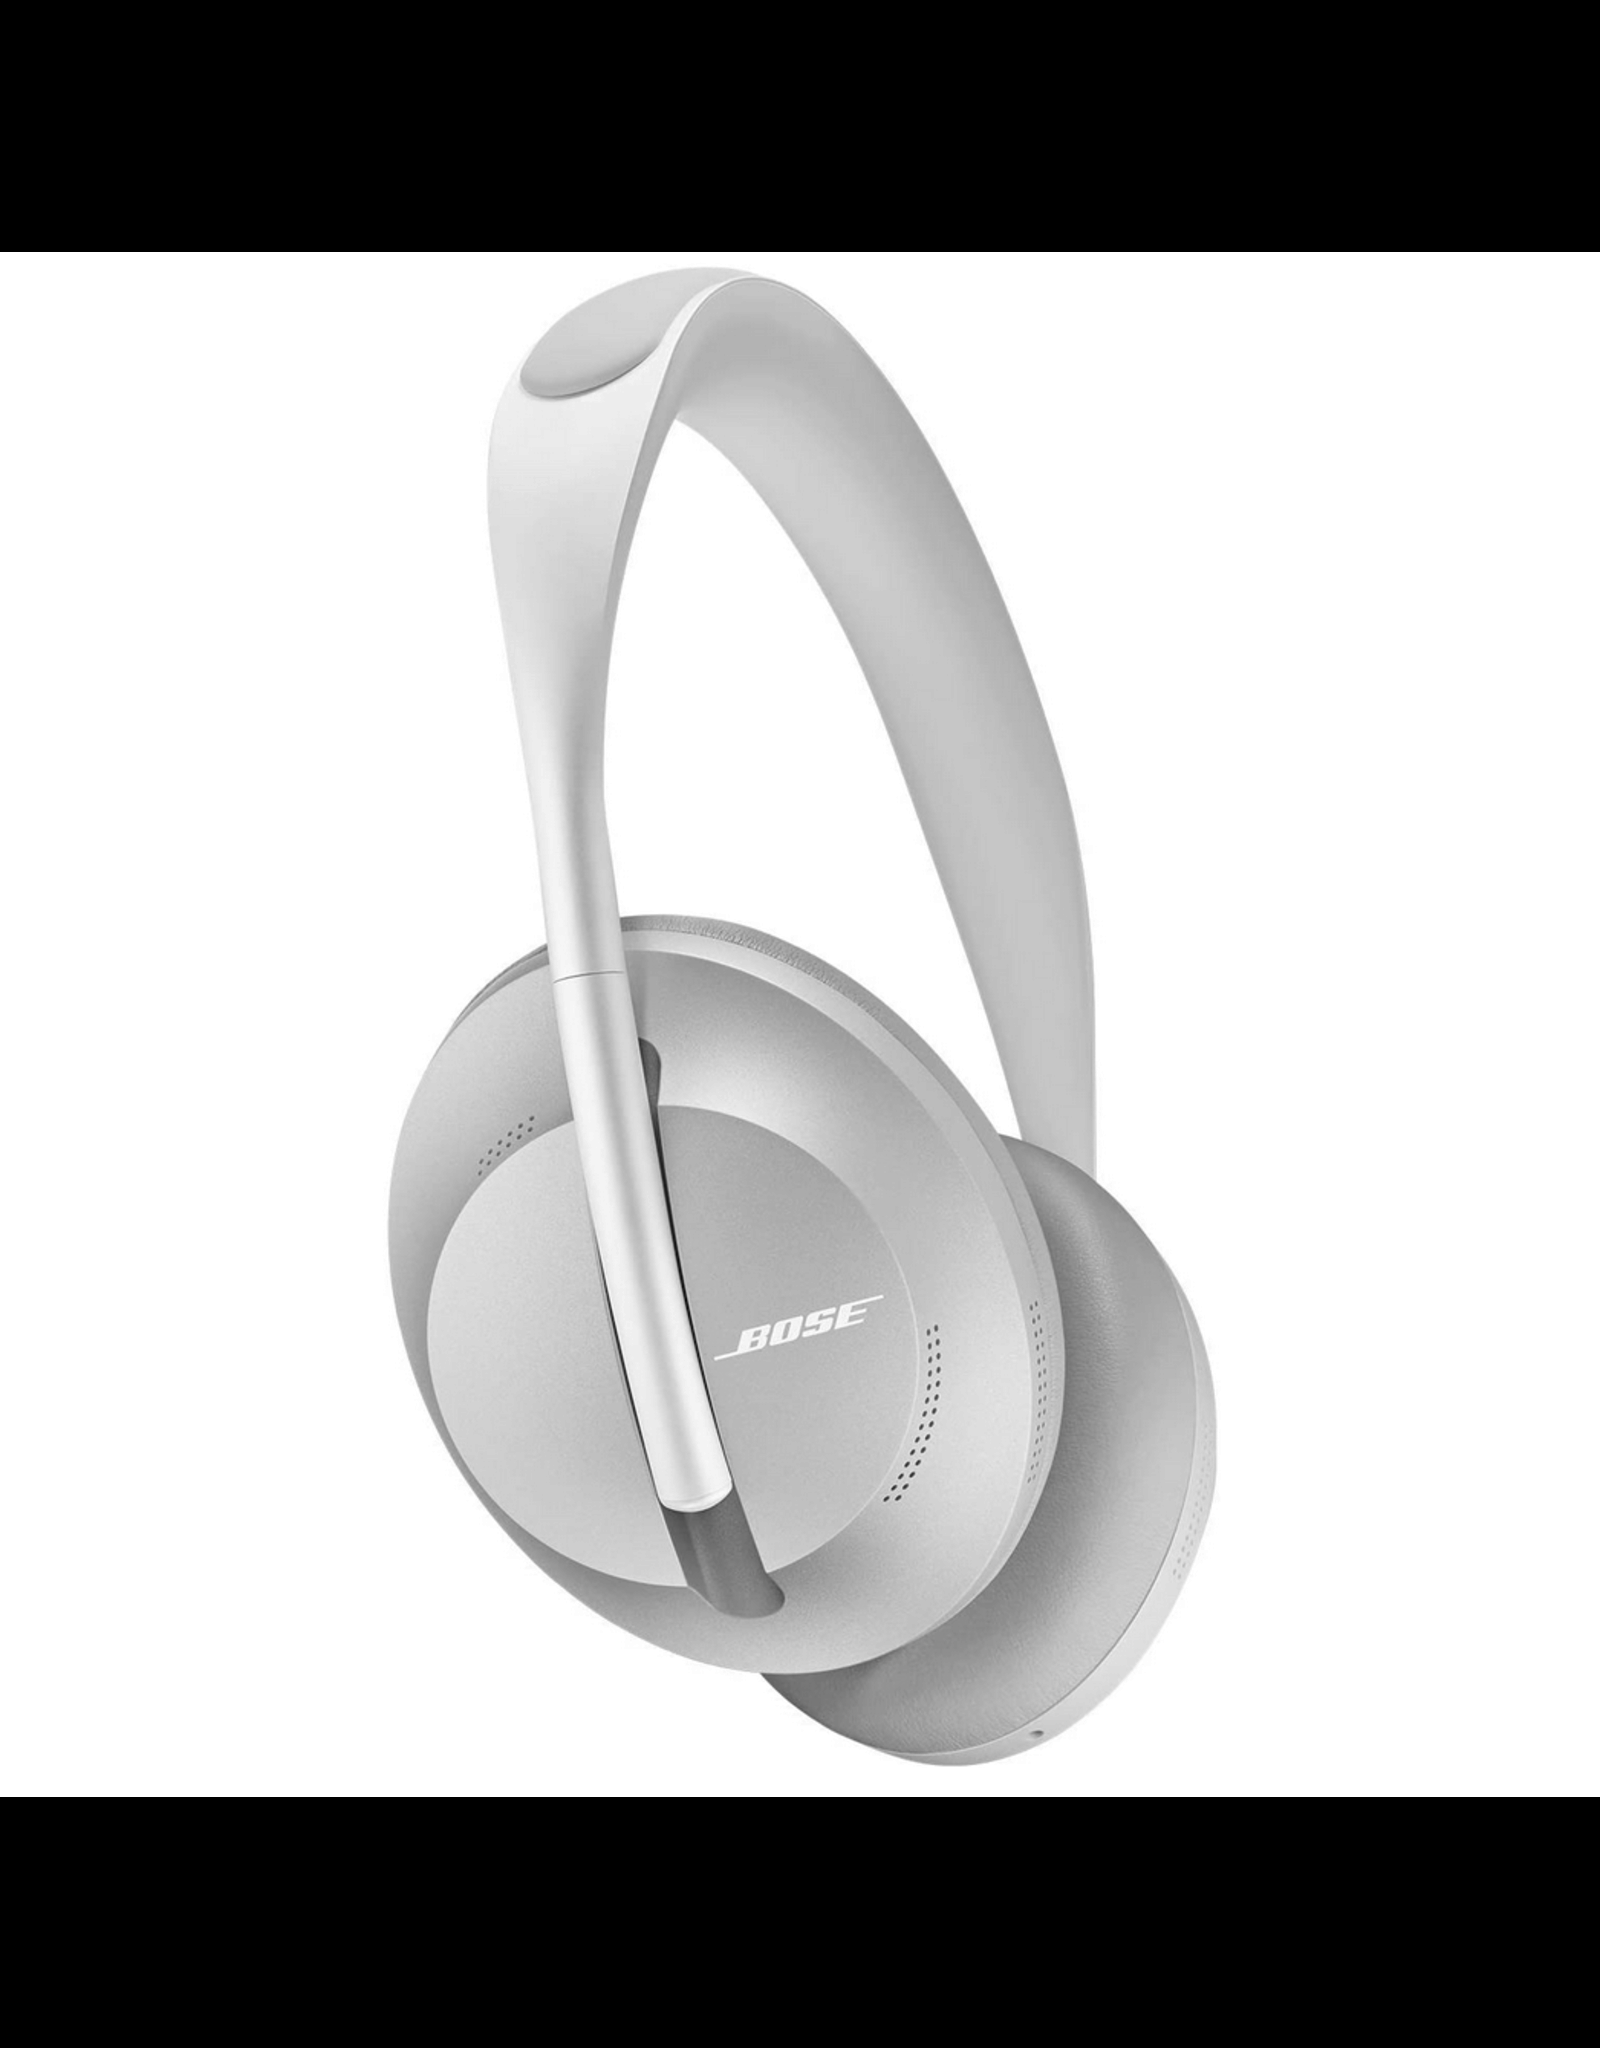 Bose Bose Noise Cancelling Wireless Bluetooth Headphones 700, Silver Luxe